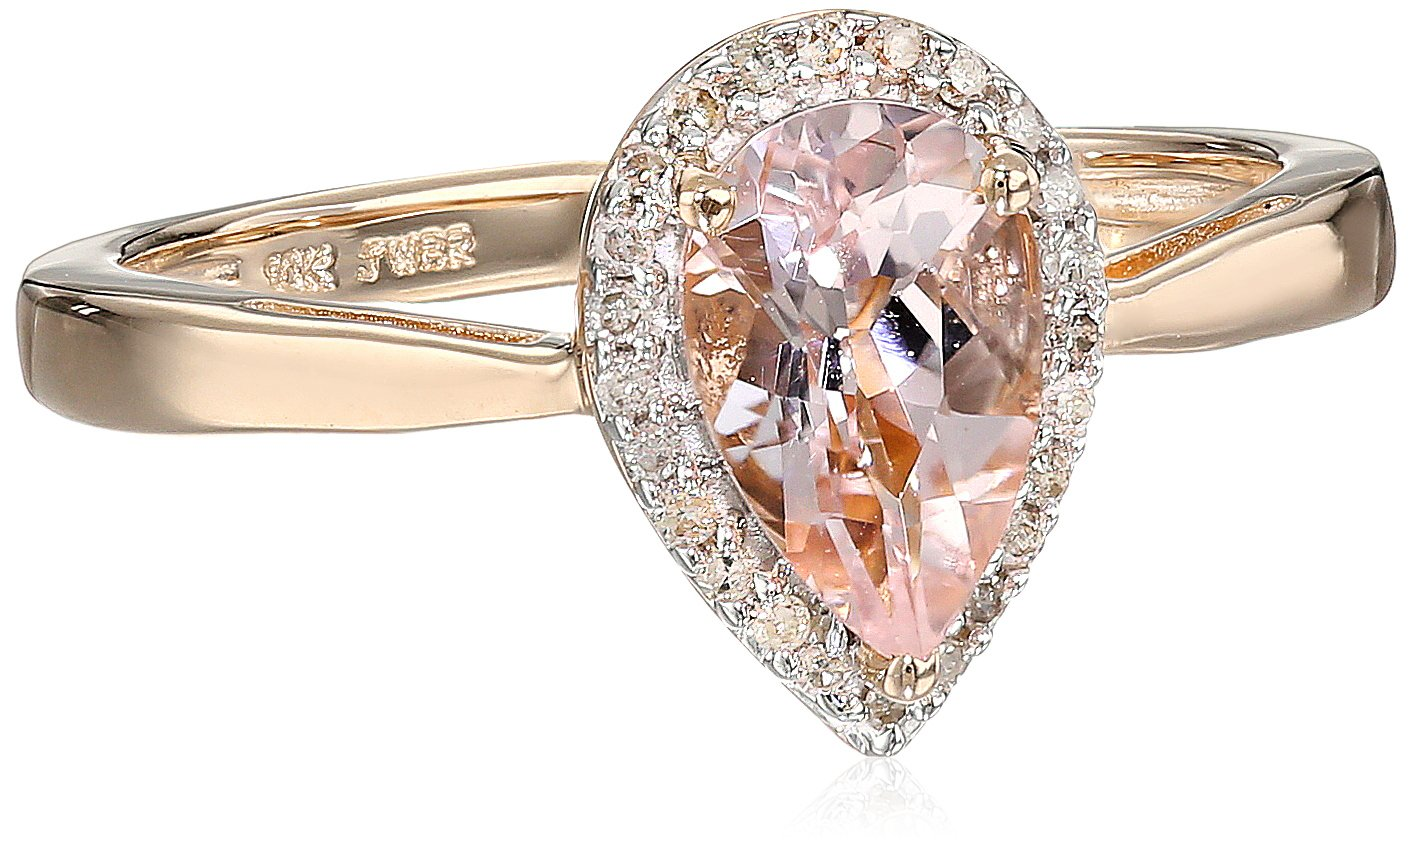 10K Rose Gold Morganite Pear with Diamond Halo Ring, Size 8